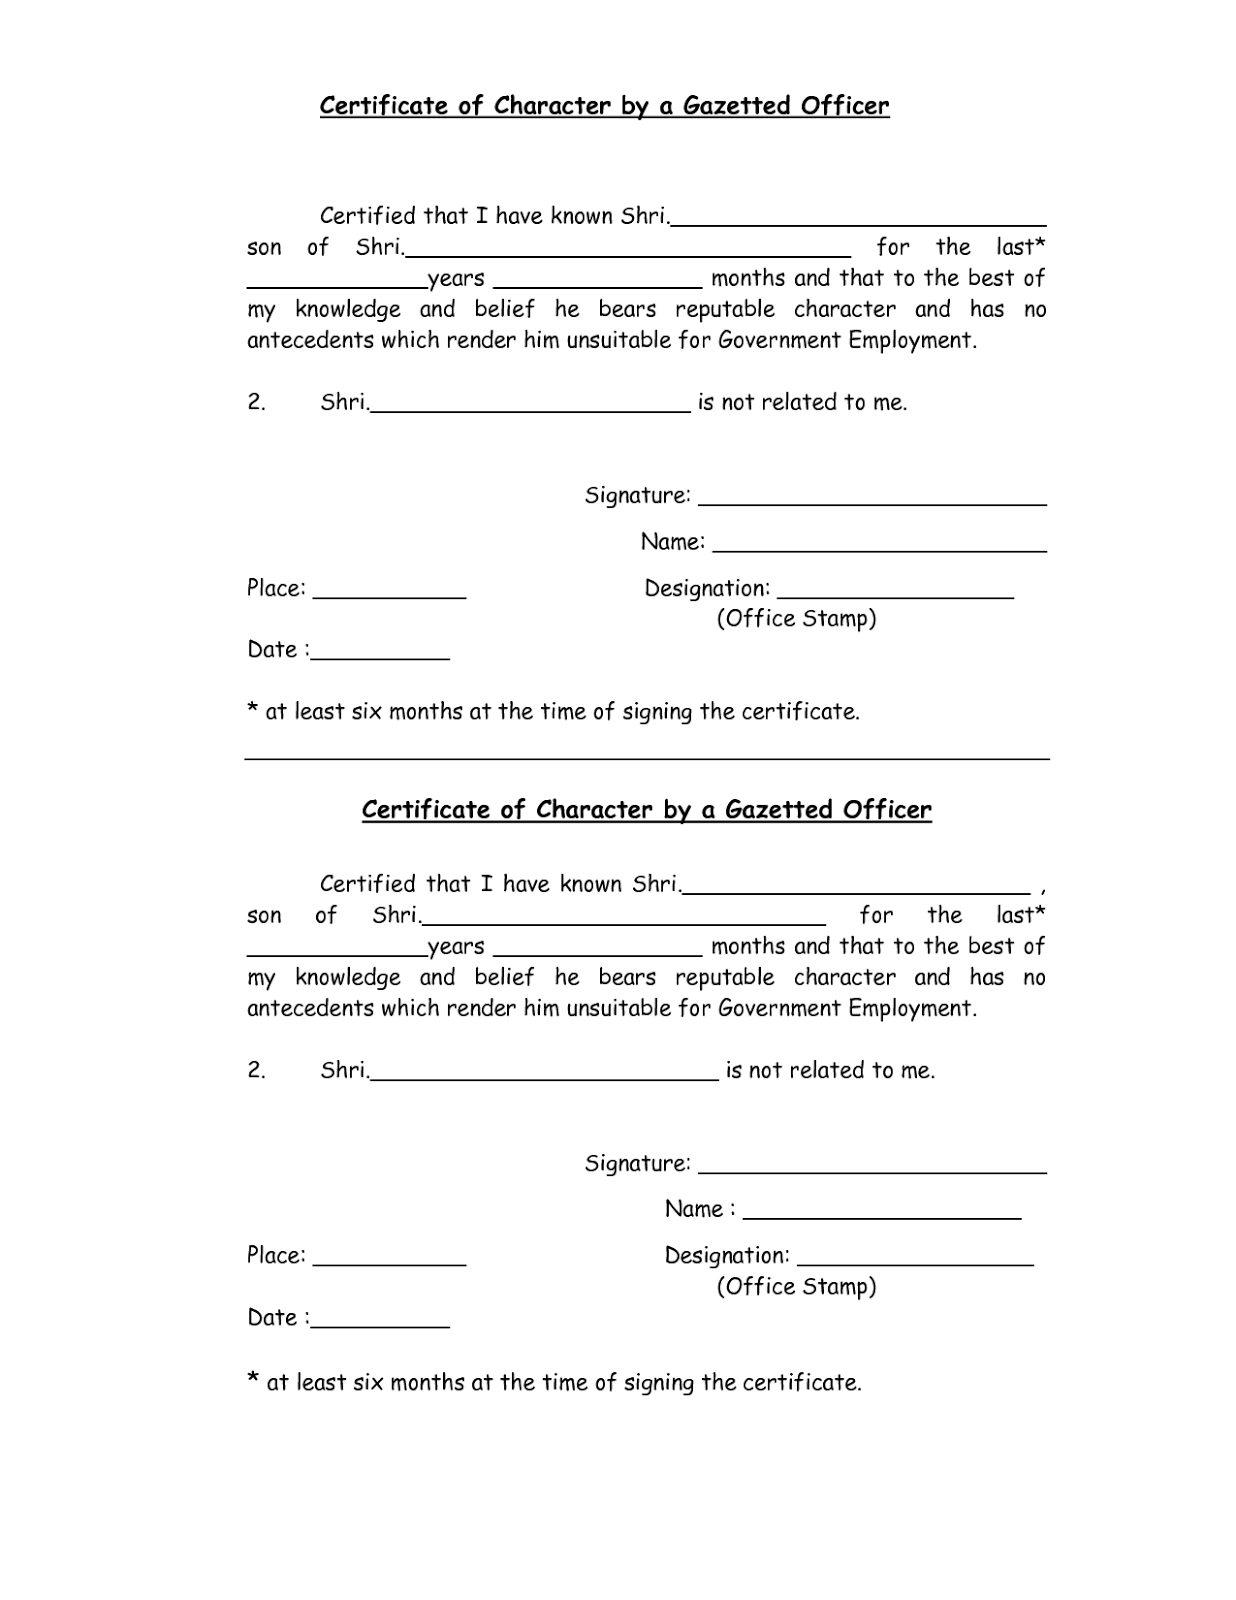 Conduct certificate format pdf for bank choice image certificate sample of character certificate format for bank interview gallery character certificate sample for bank job choice yadclub Image collections